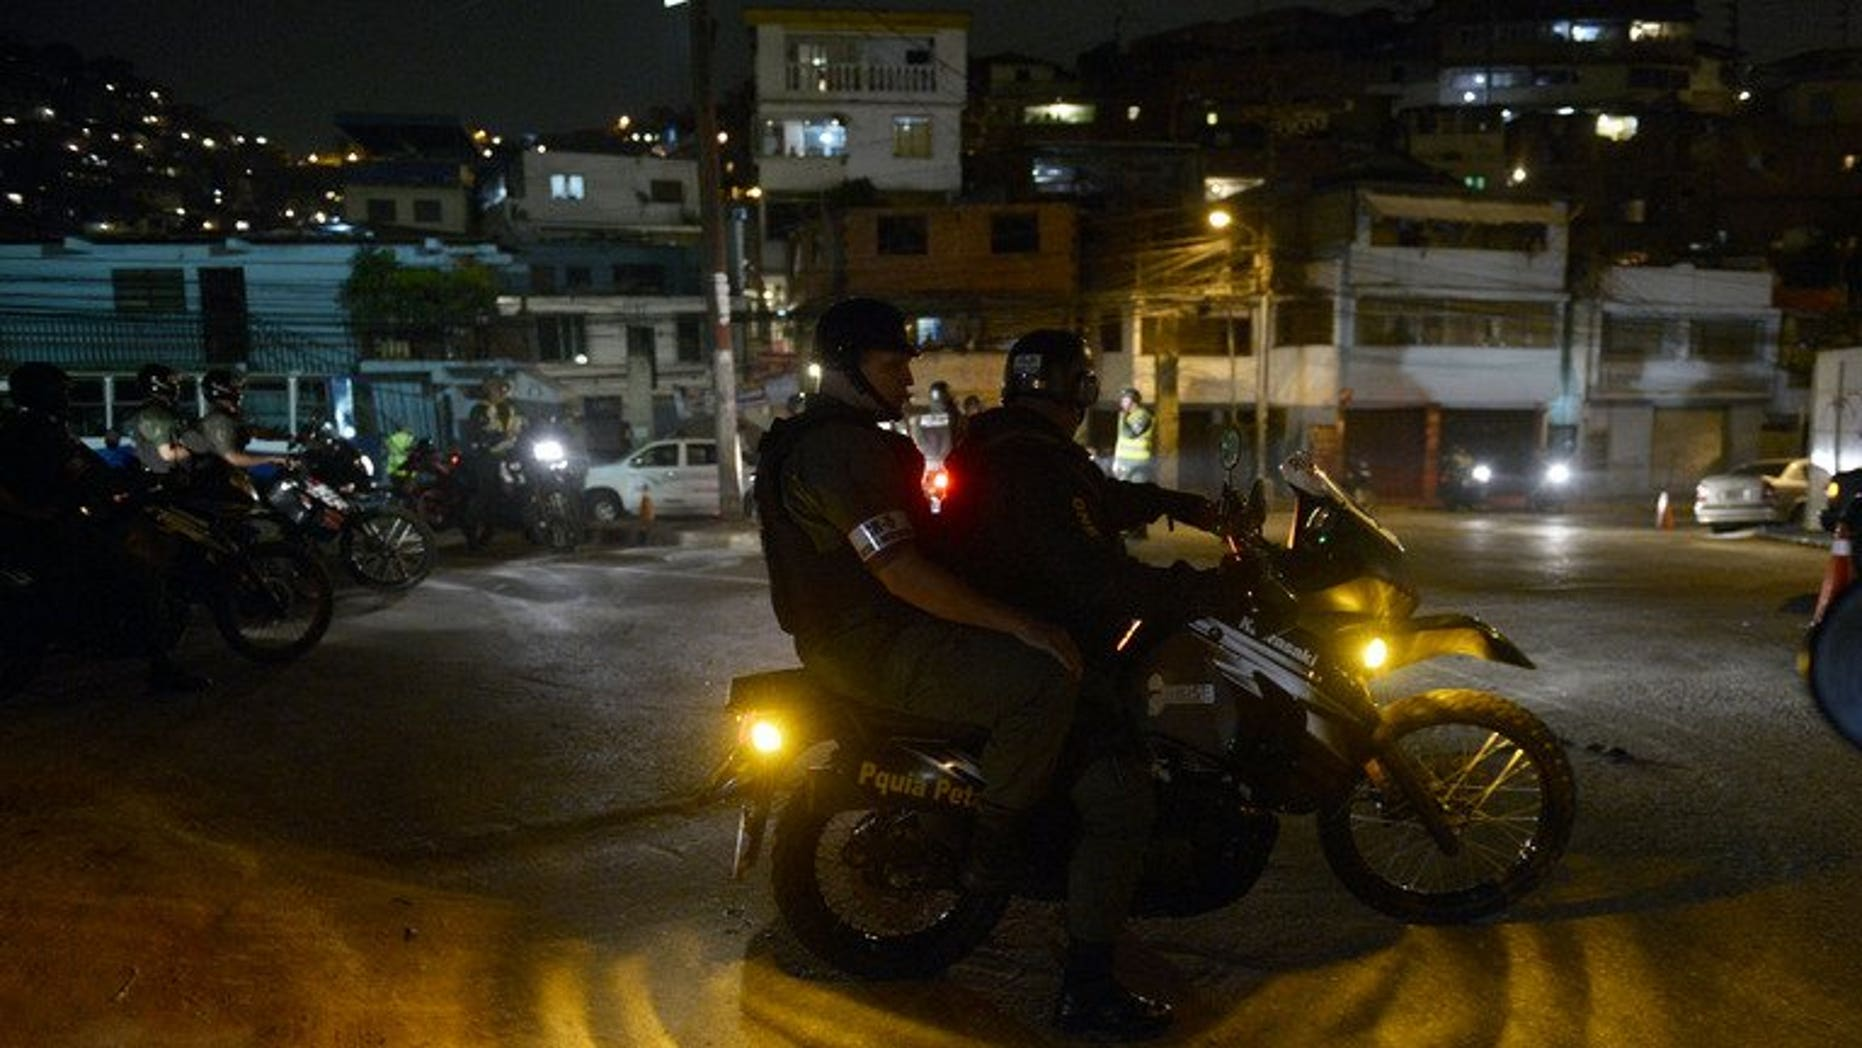 Members of the National Guard carry out a security operation in the impoverished Petare neighbourhood, one of Caracas' most dangerous slums, on May 13, 2013. Venezuela is installing 30,000 surveillance cameras to crack down on rampant crime, officials said Wednesday.